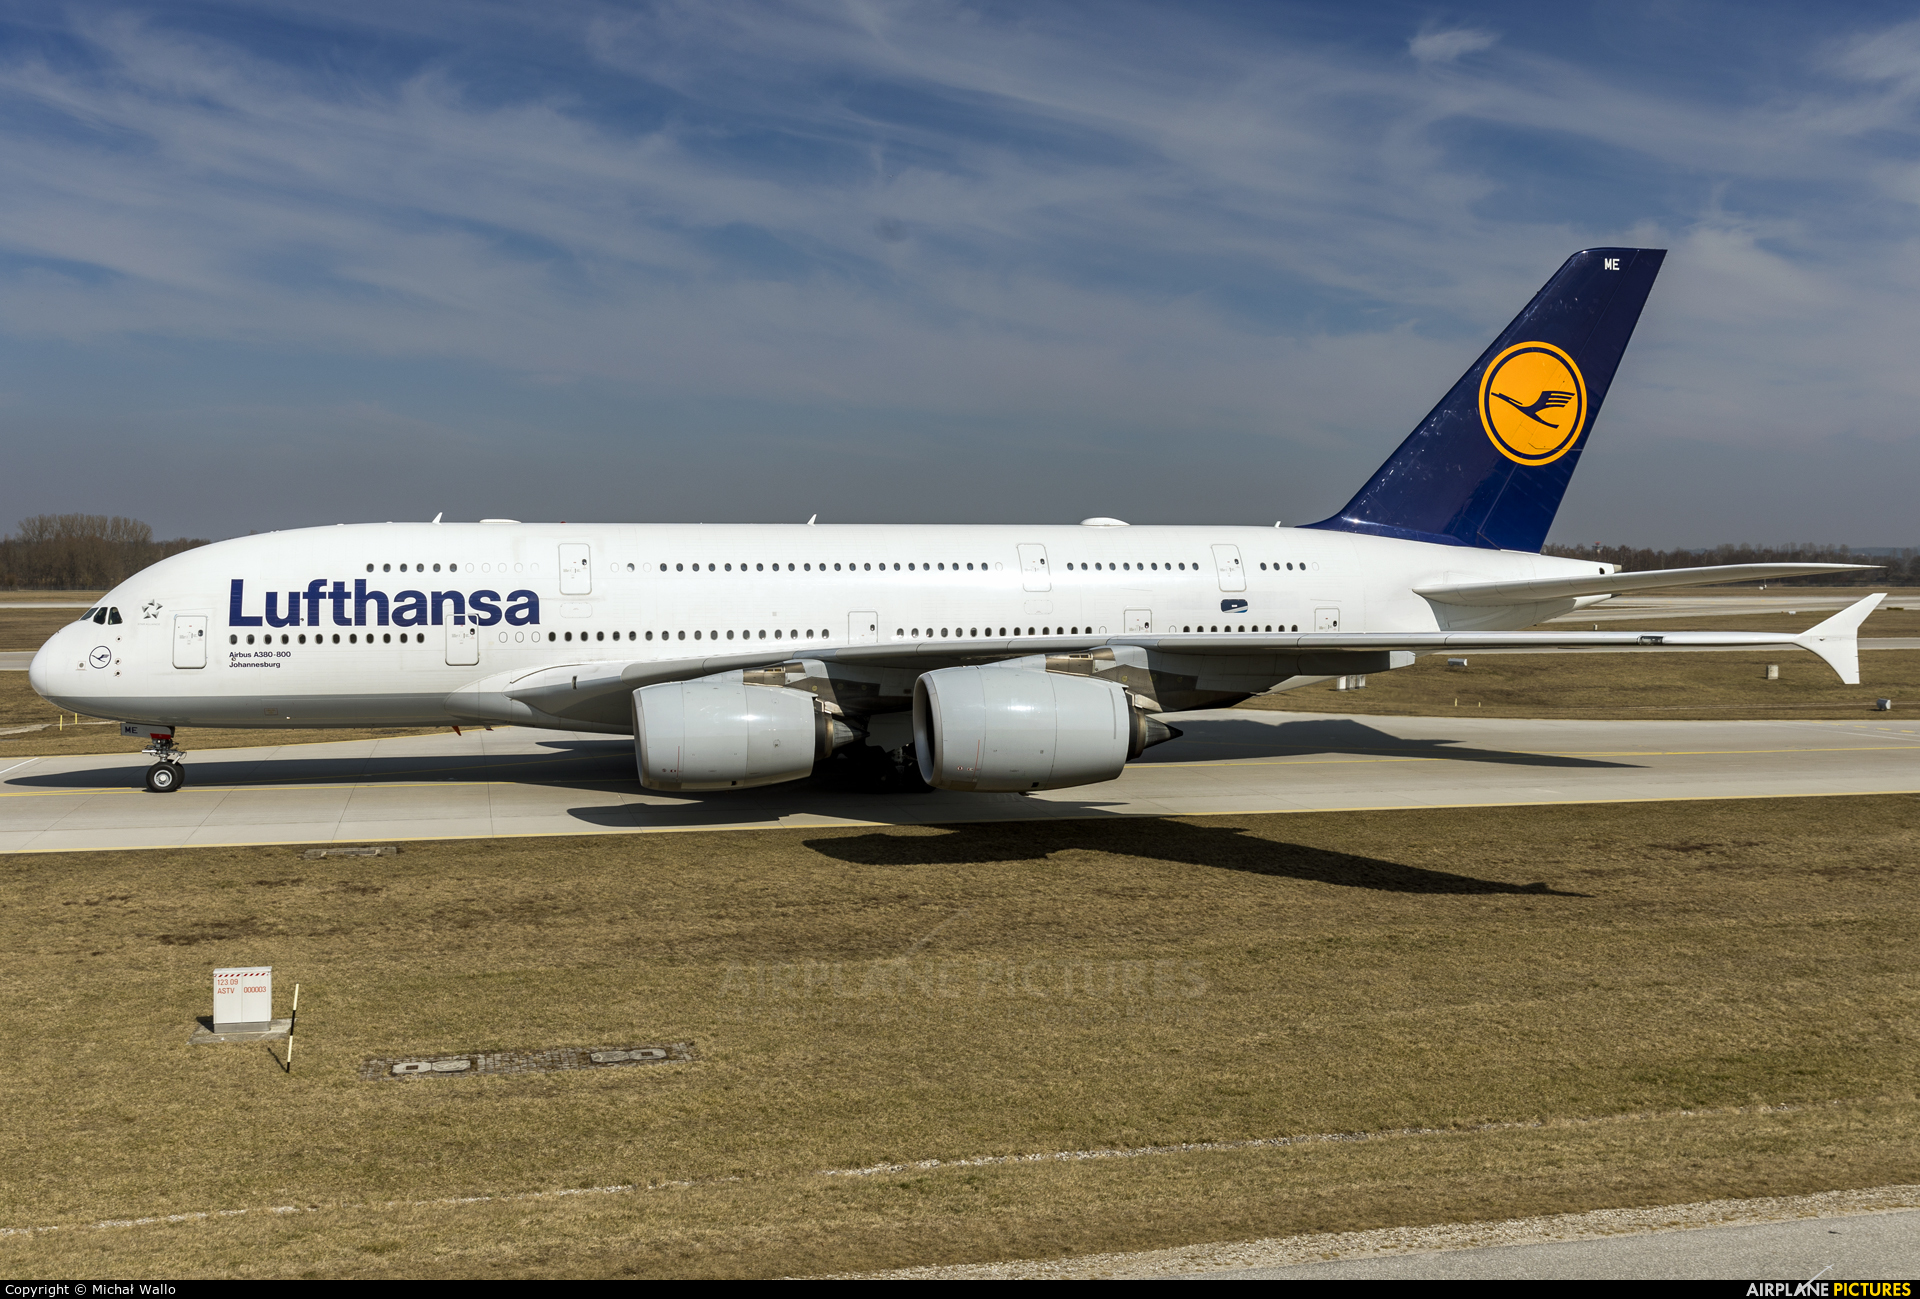 Lufthansa D-AIME aircraft at Munich